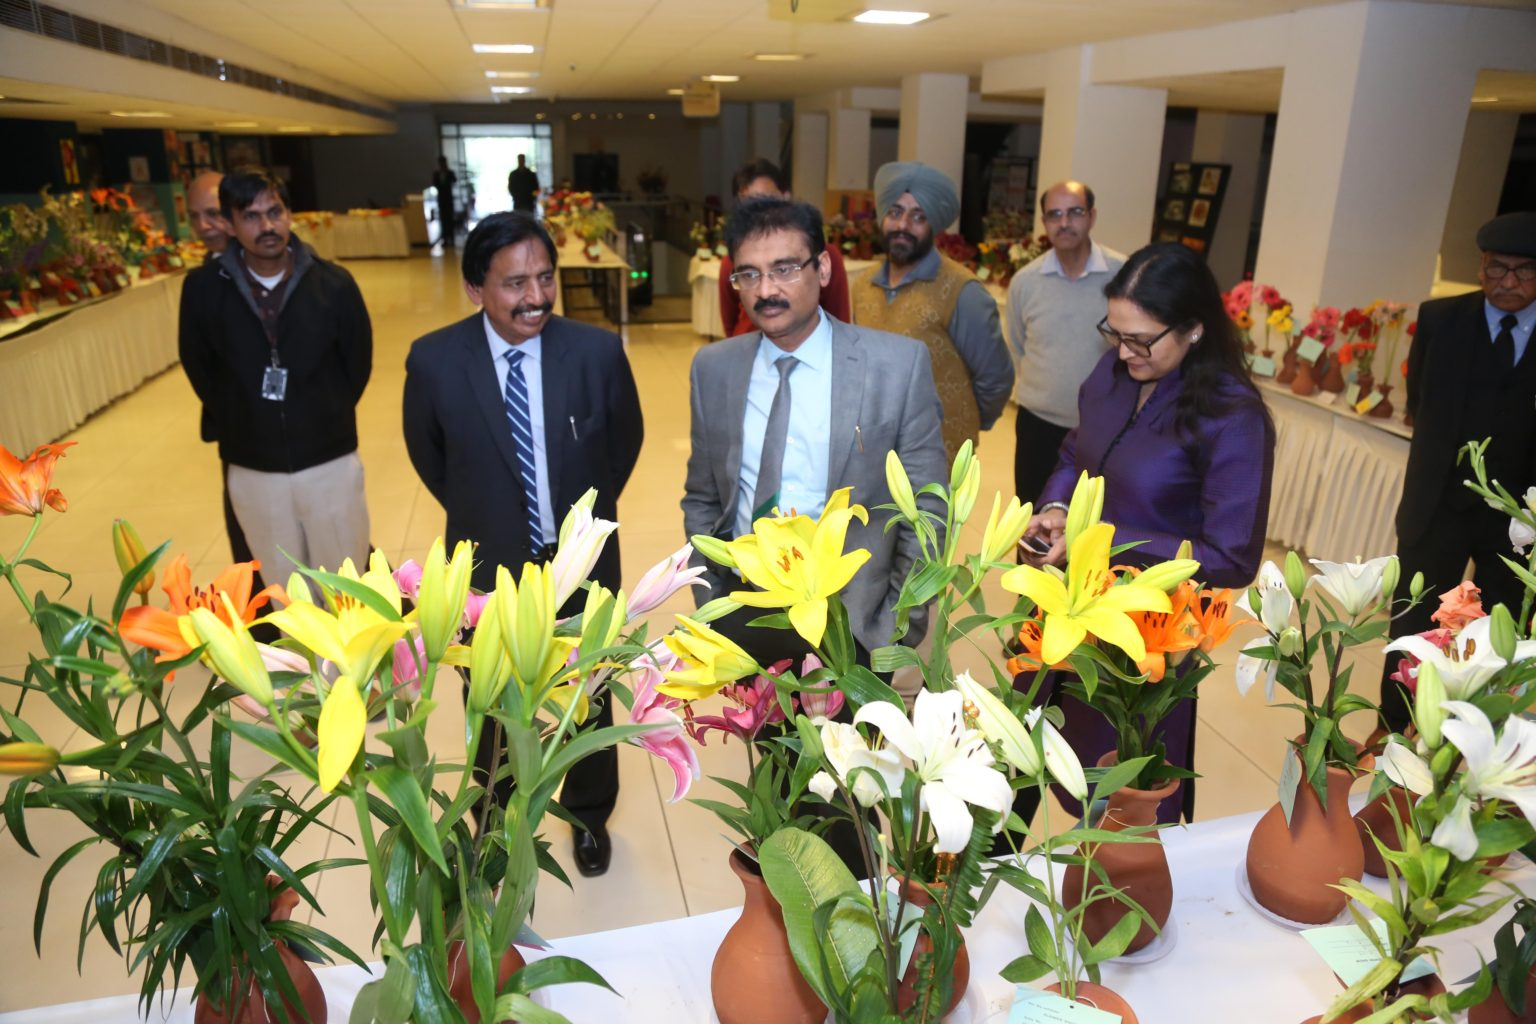 LPU Agriculture Department organized Spring Flower Show